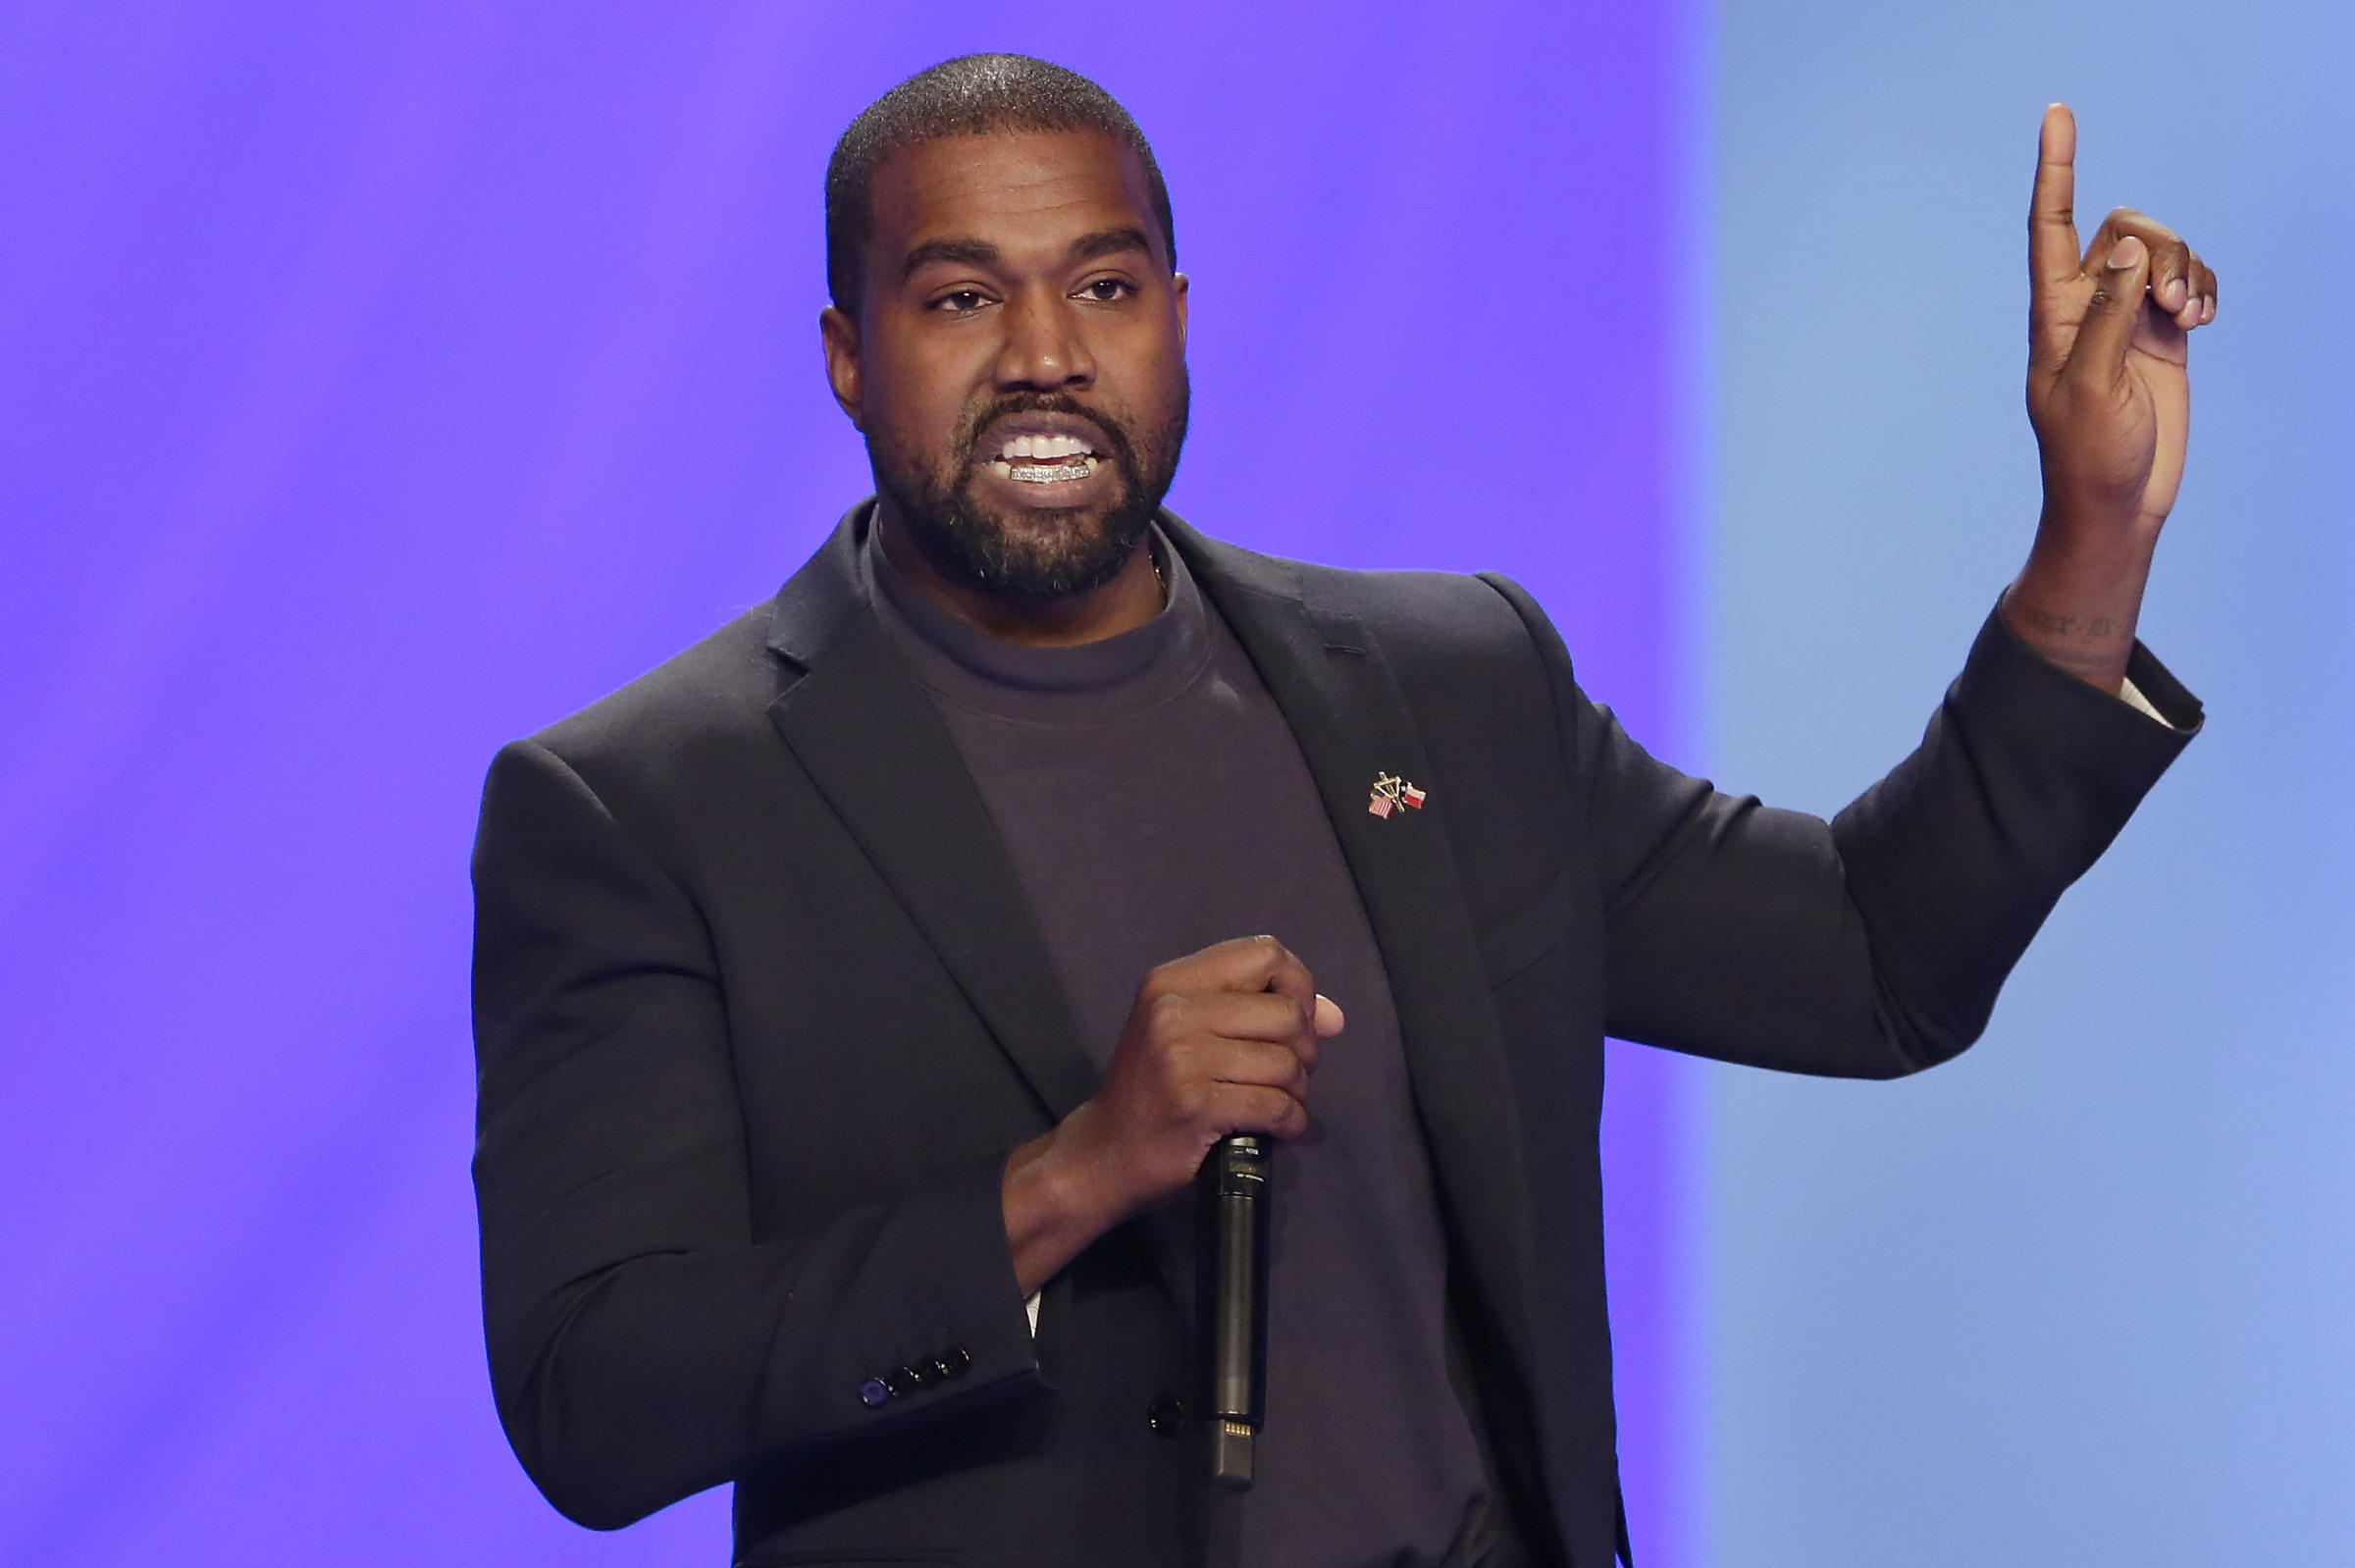 Here S How Republicans Are Boosting Kanye West S Presidential Campaign Npr Illinois